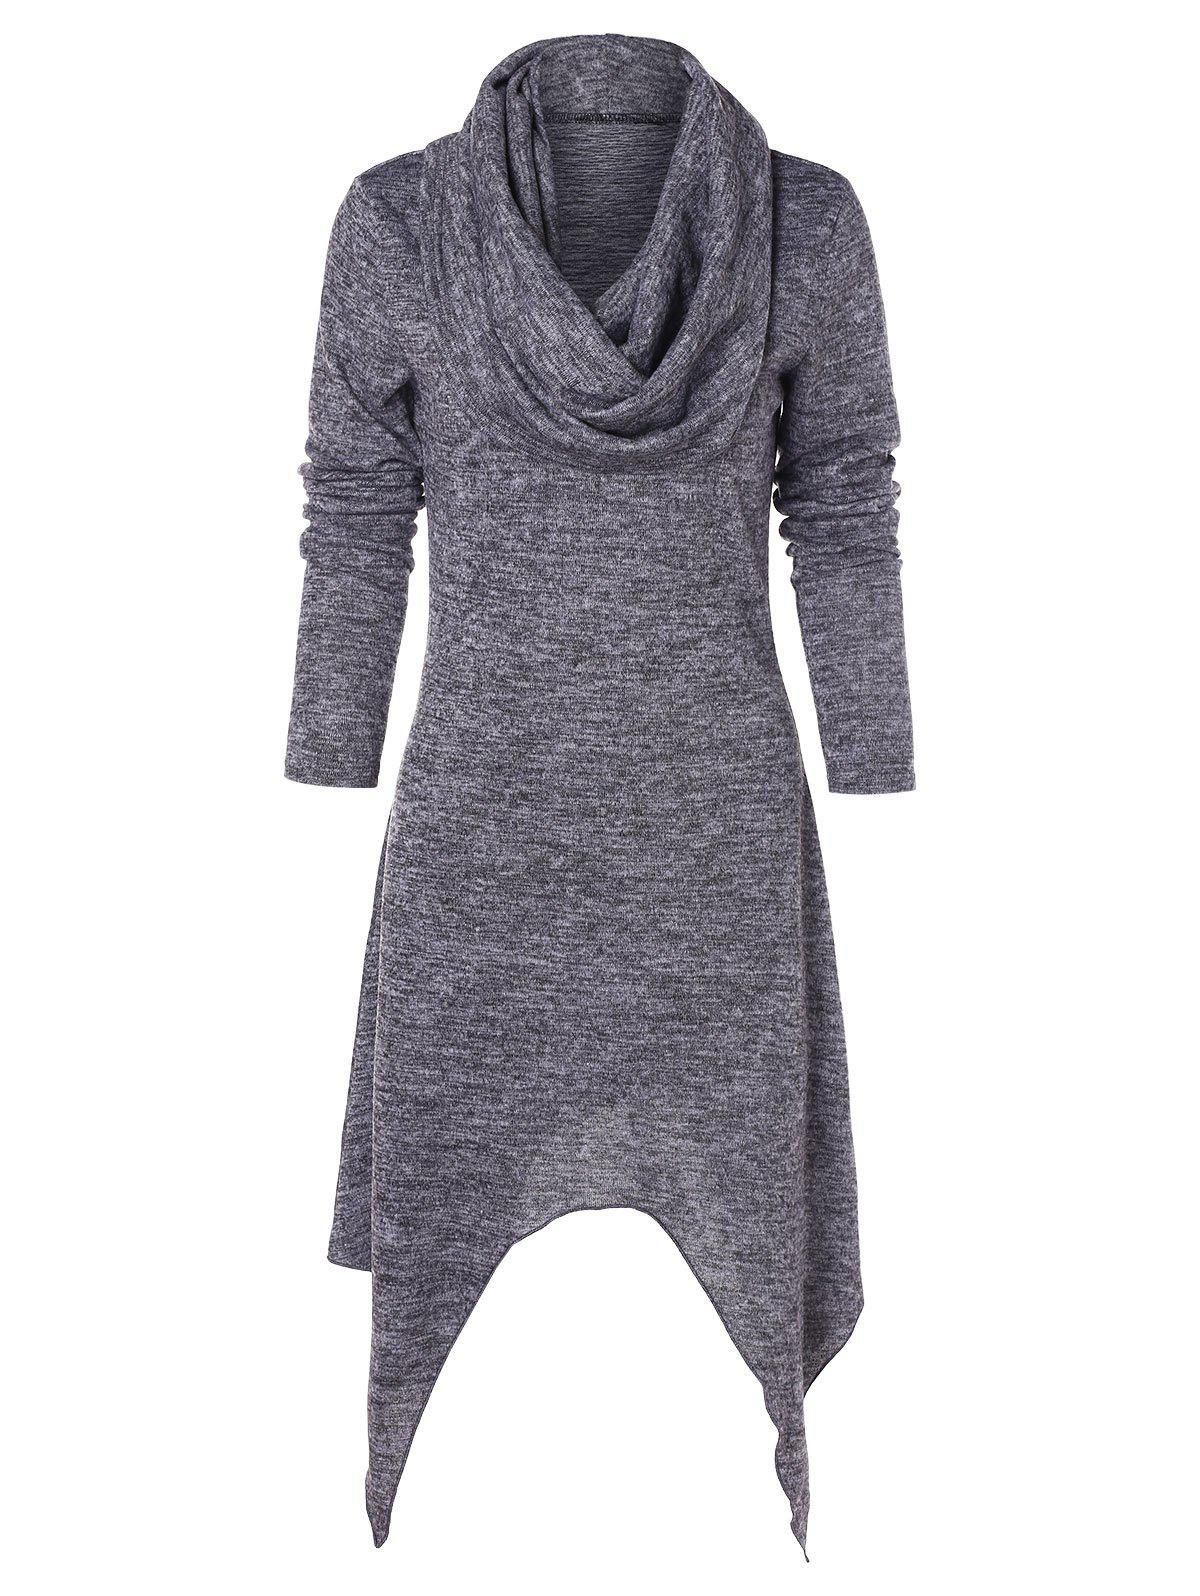 Online Cowl Neck Full Sleeve Handkerchief Dress